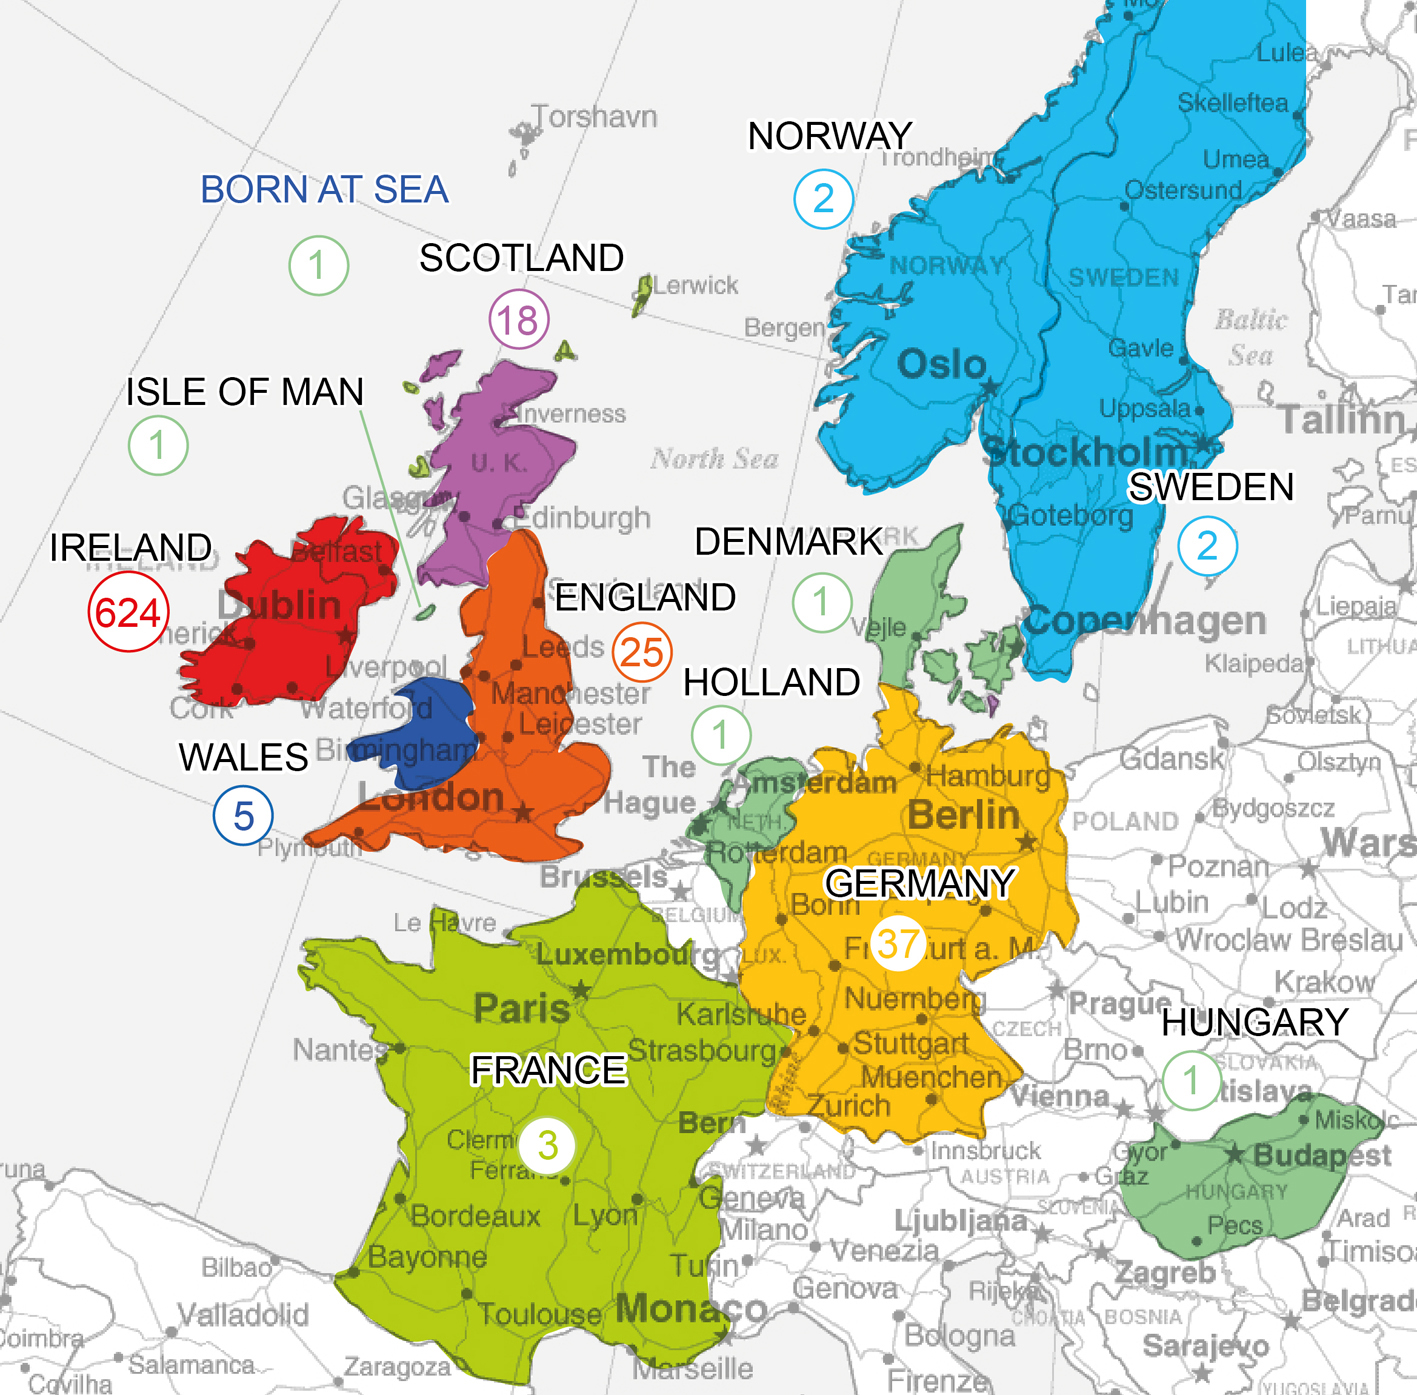 map of europe showing ireland Where Were 'Irish' Soldiers From?: A Case Study of the 90th